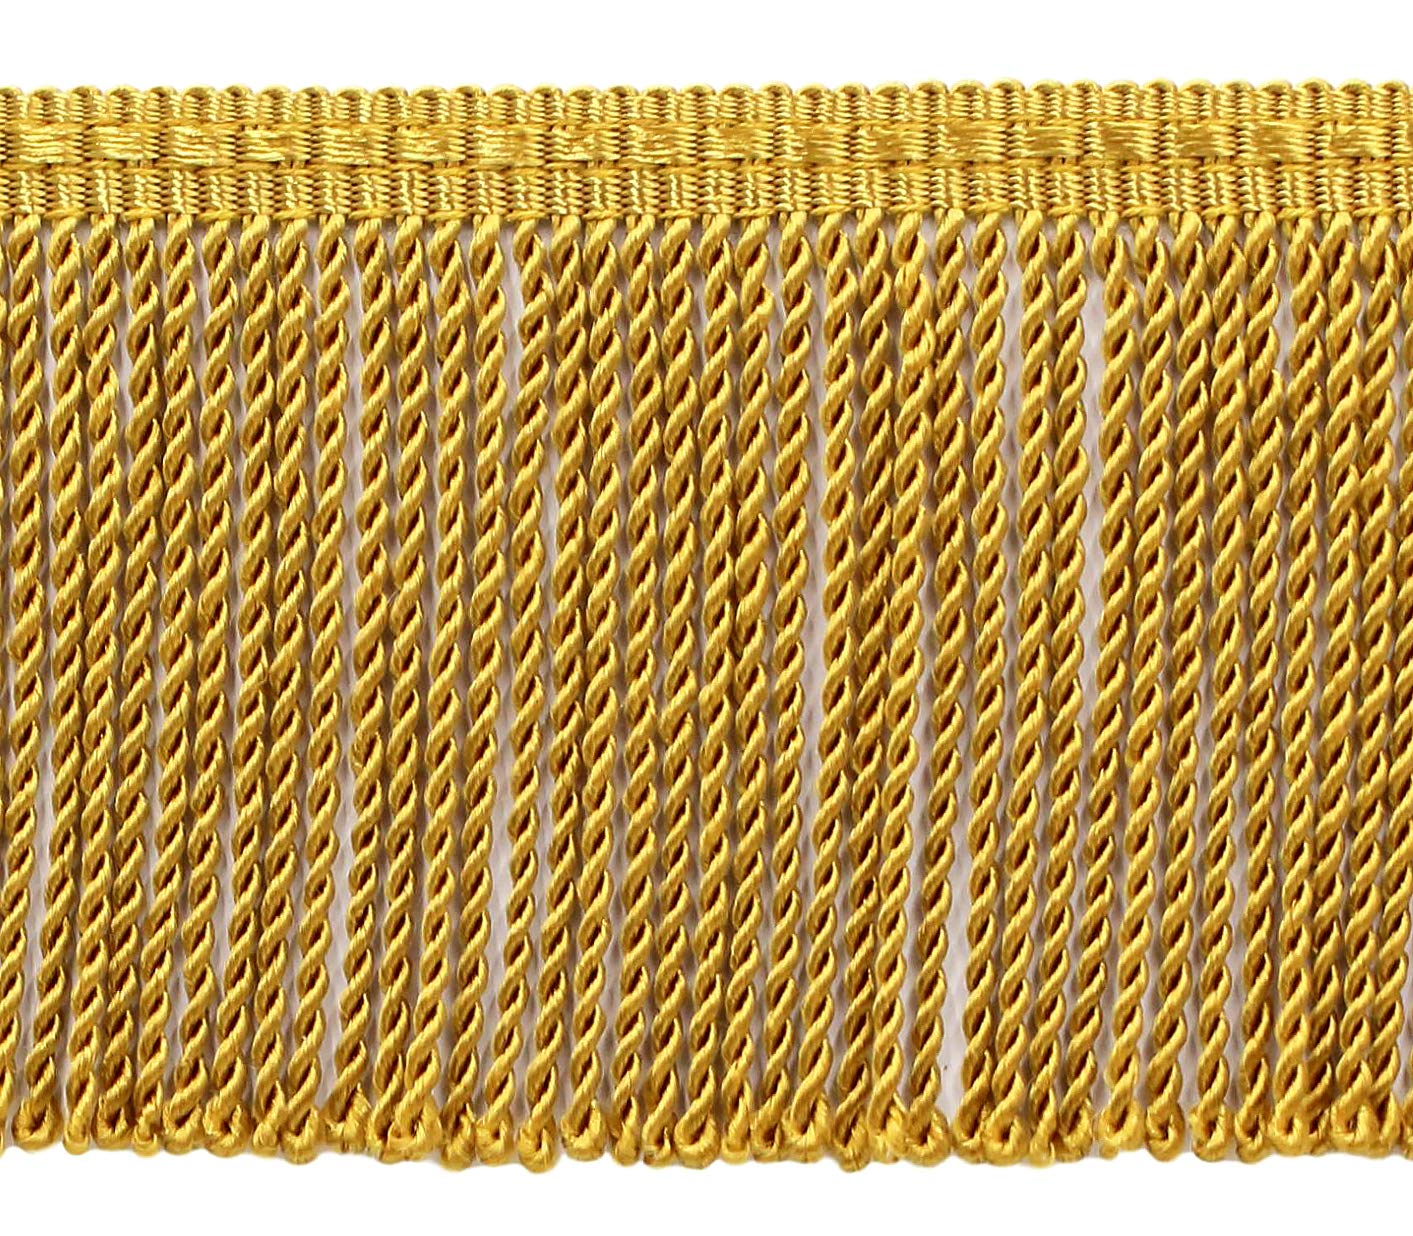 DÉCOPRO 8 Yard Value Pack - 3 Inch Long Old Gold Thin Bullion Fringe Trim, Style# BFTC3 Color: D05 (24 Ft / 7.3 Meters) by DÉCOPRO